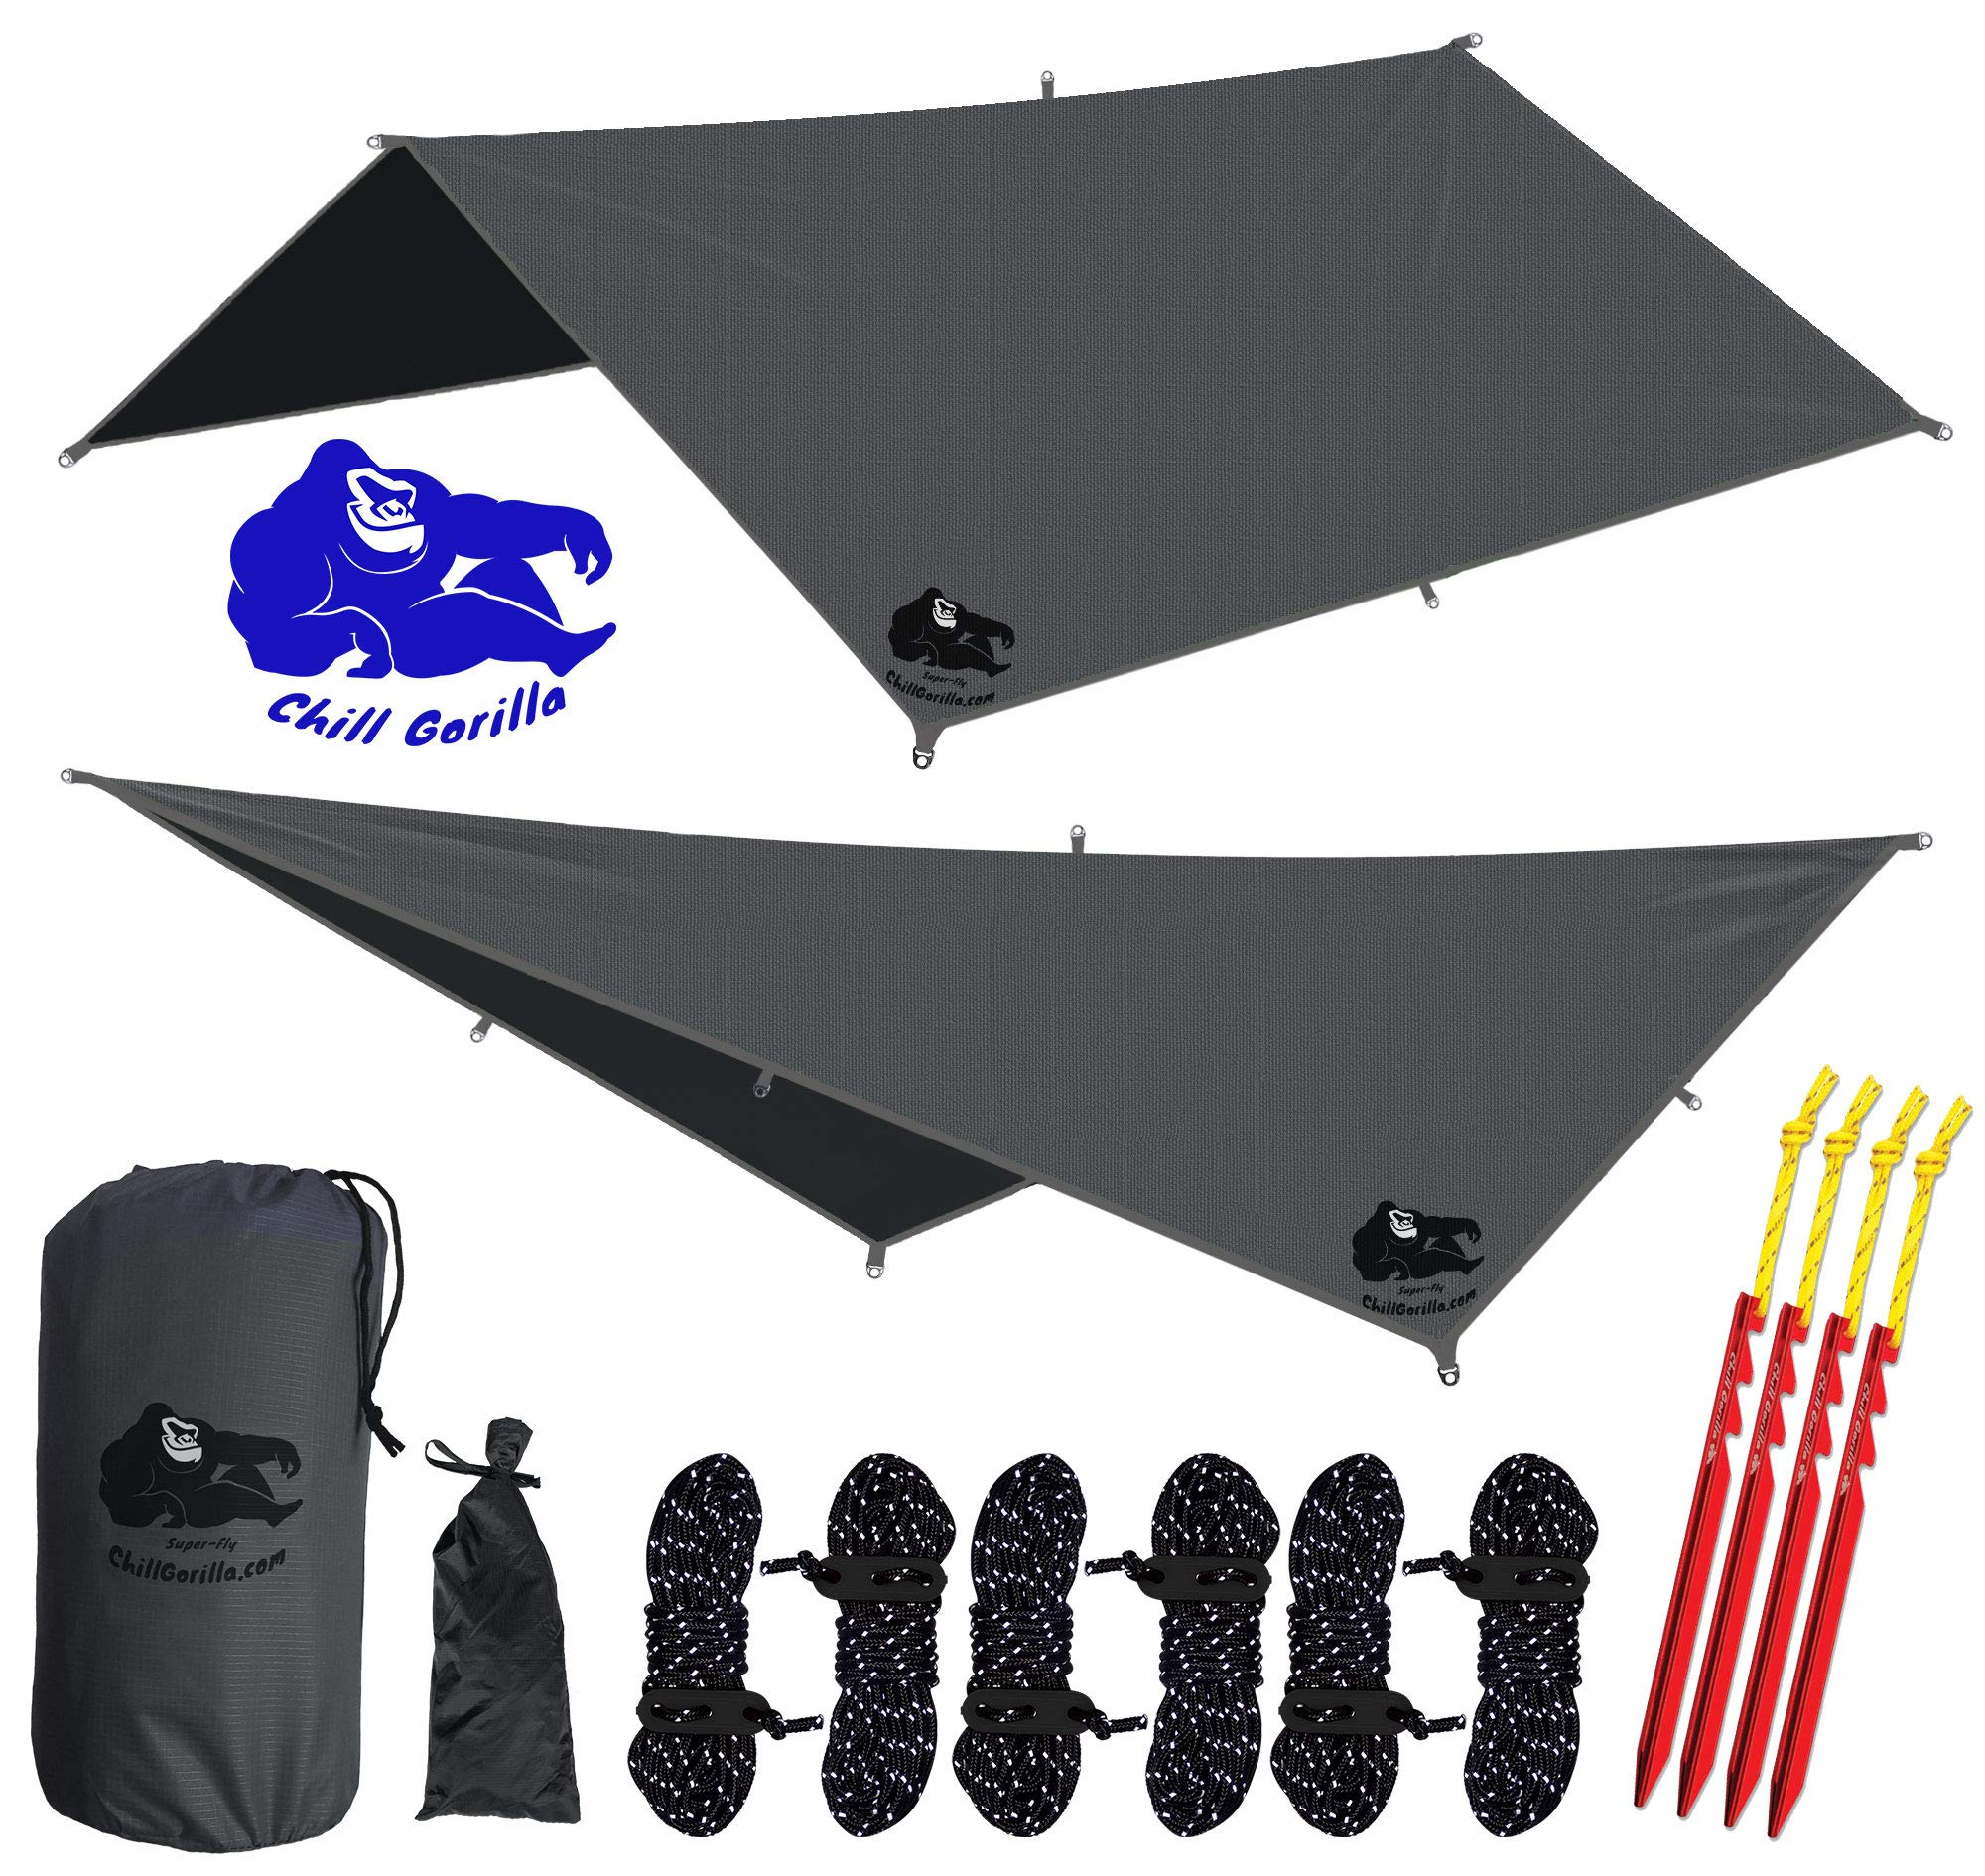 Chill Gorilla 10x10 Hammock Rain Fly Camping Tarp. Ripstop Nylon. 170'' Centerline. Stakes, Ropes & Tensioners Included. Camping Gear & Accessories. Perfect Hammock Tent. Gray by Chill Gorilla